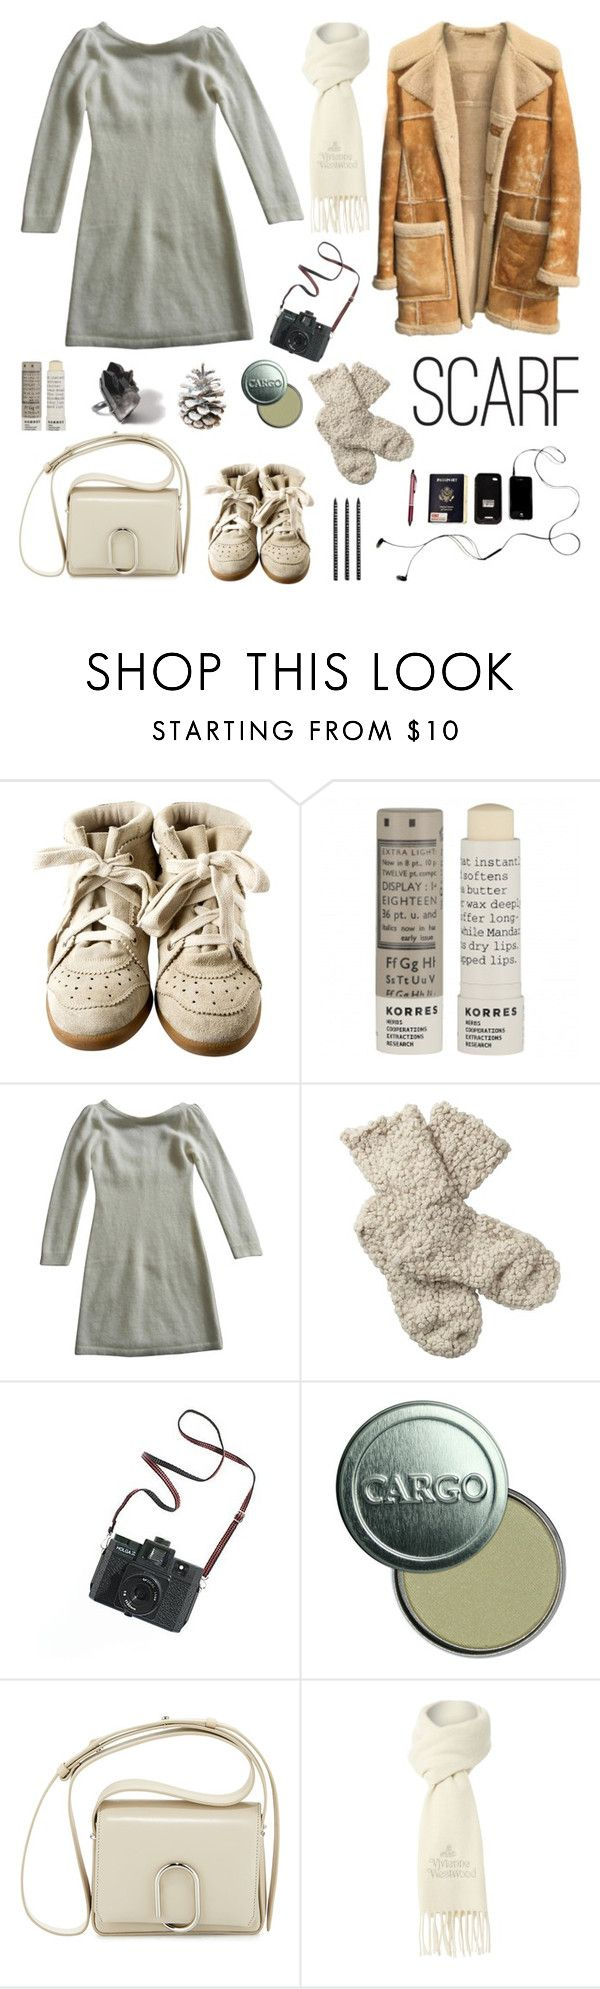 """Scarf"" by deepwinter ❤ liked on Polyvore featuring Isabel Marant, Korres, BA&SH, Fat Face, Madewell, CARGO, 3.1 Phillip Lim, Vivienne Westwood, Design Letters and scarf"